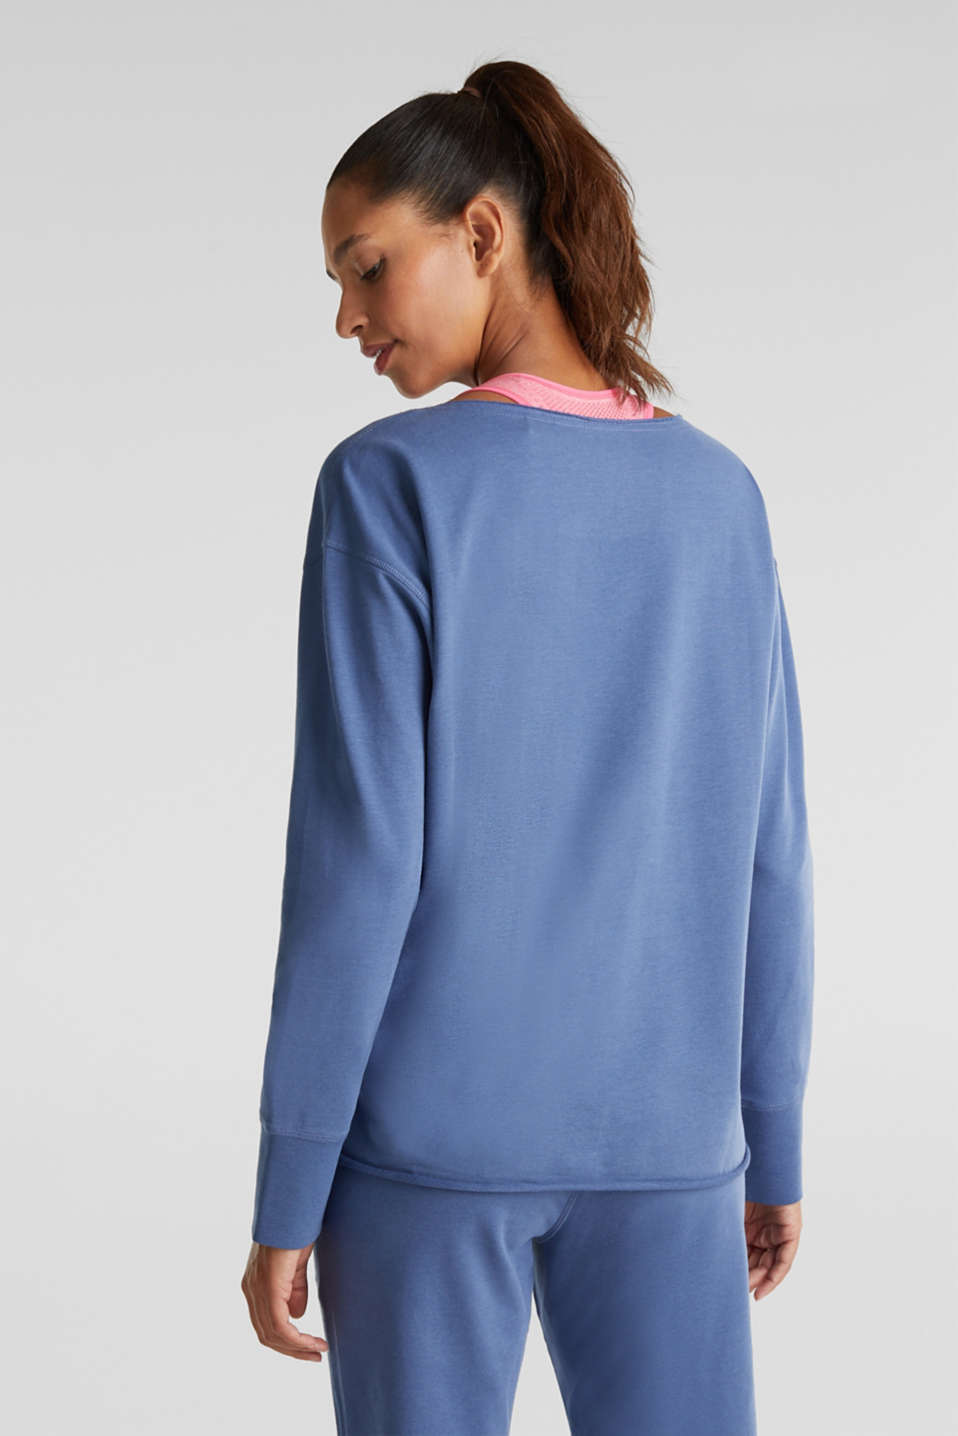 Sweatshirt with a logo print, GREY BLUE, detail image number 3